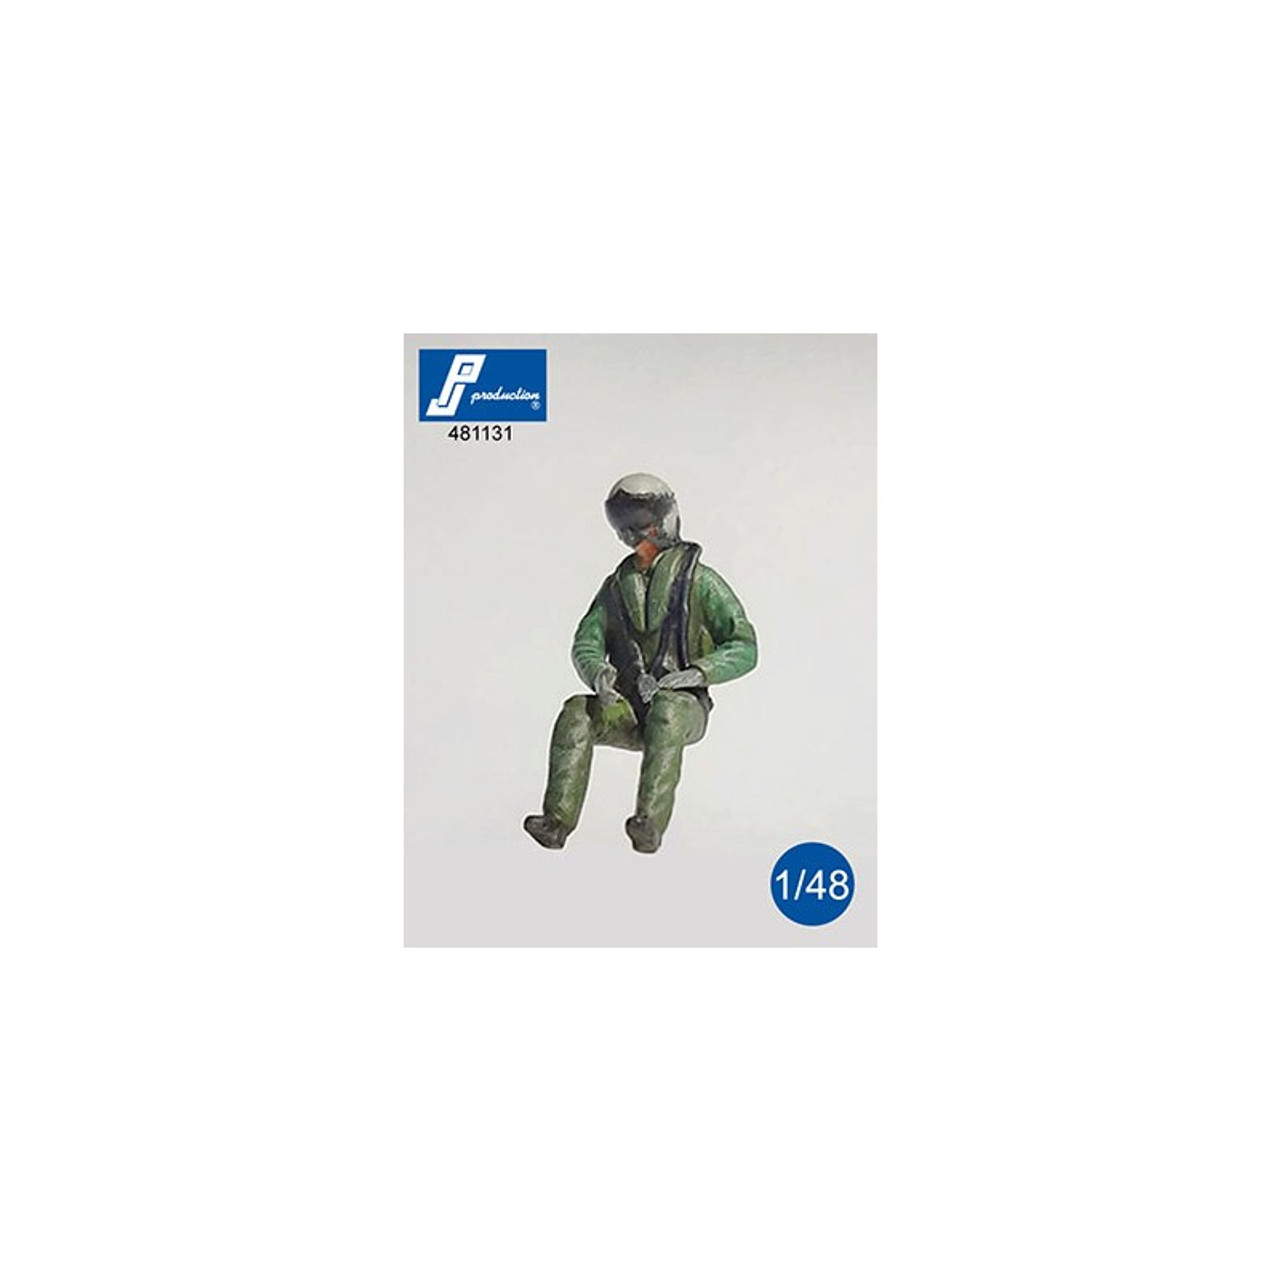 PJ Productions Eurofighter Pilot Seated in Aircraft Figures 1:48 (PJP481131)